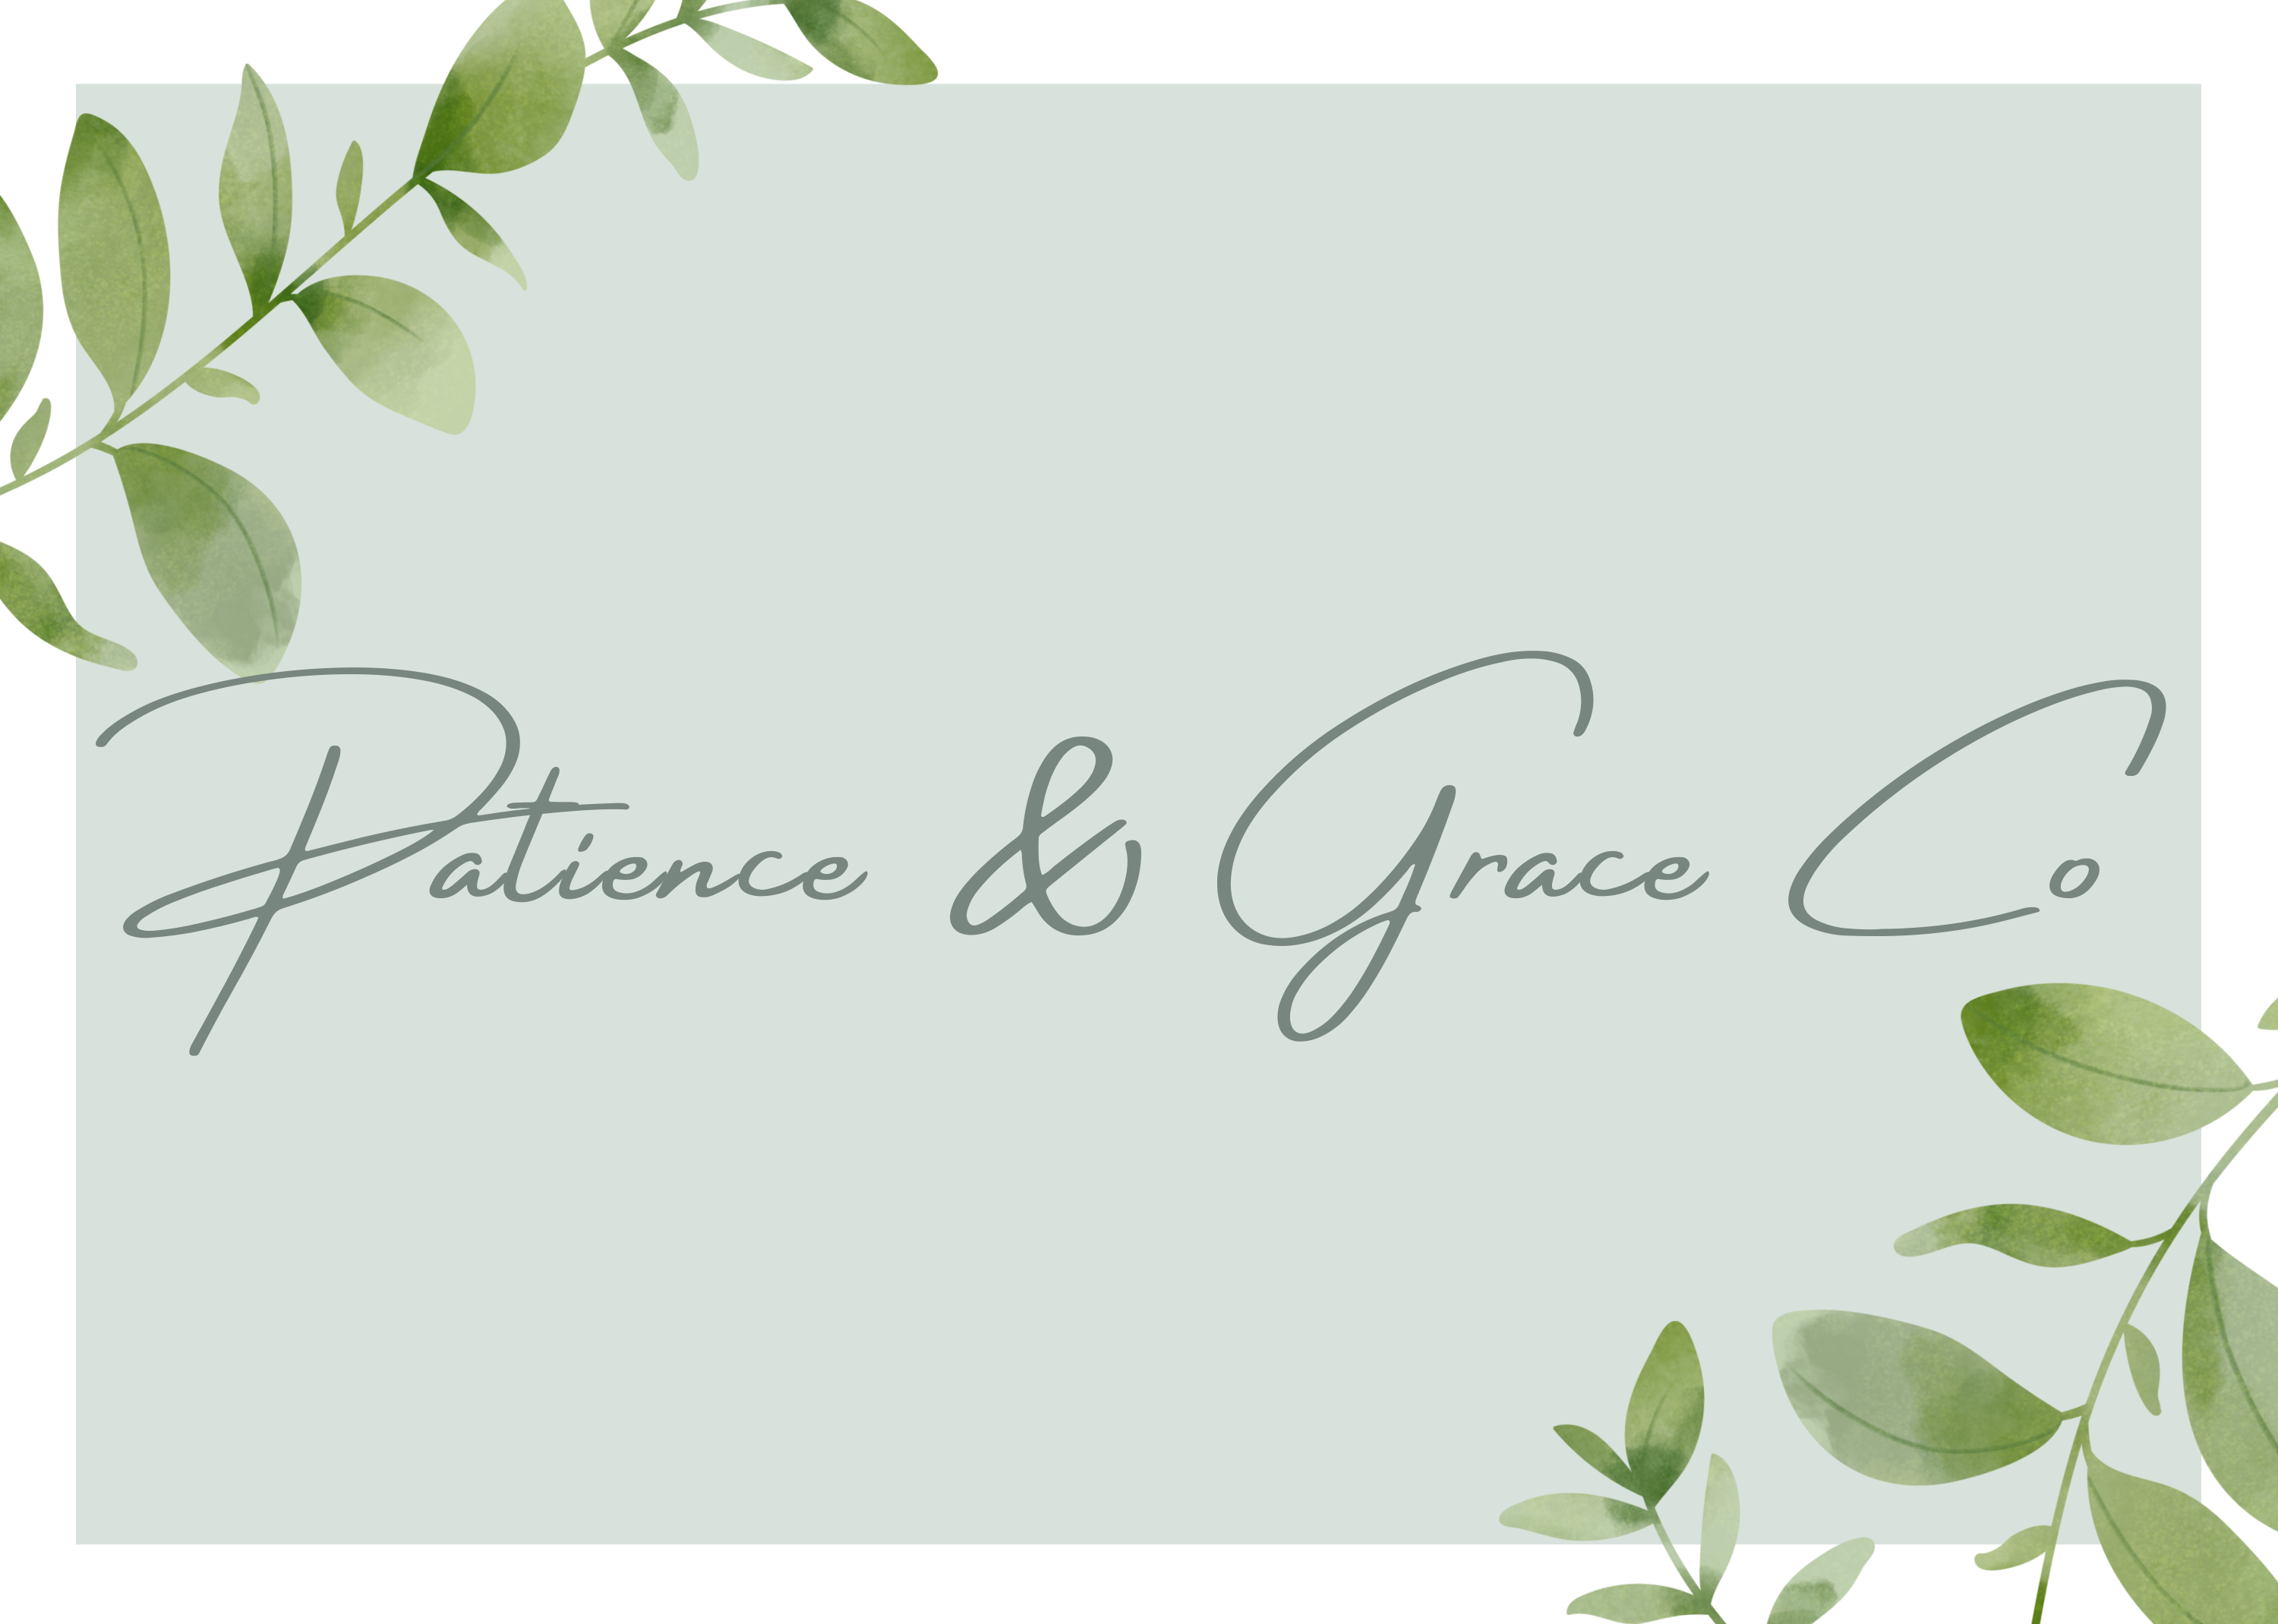 Patience and Grace